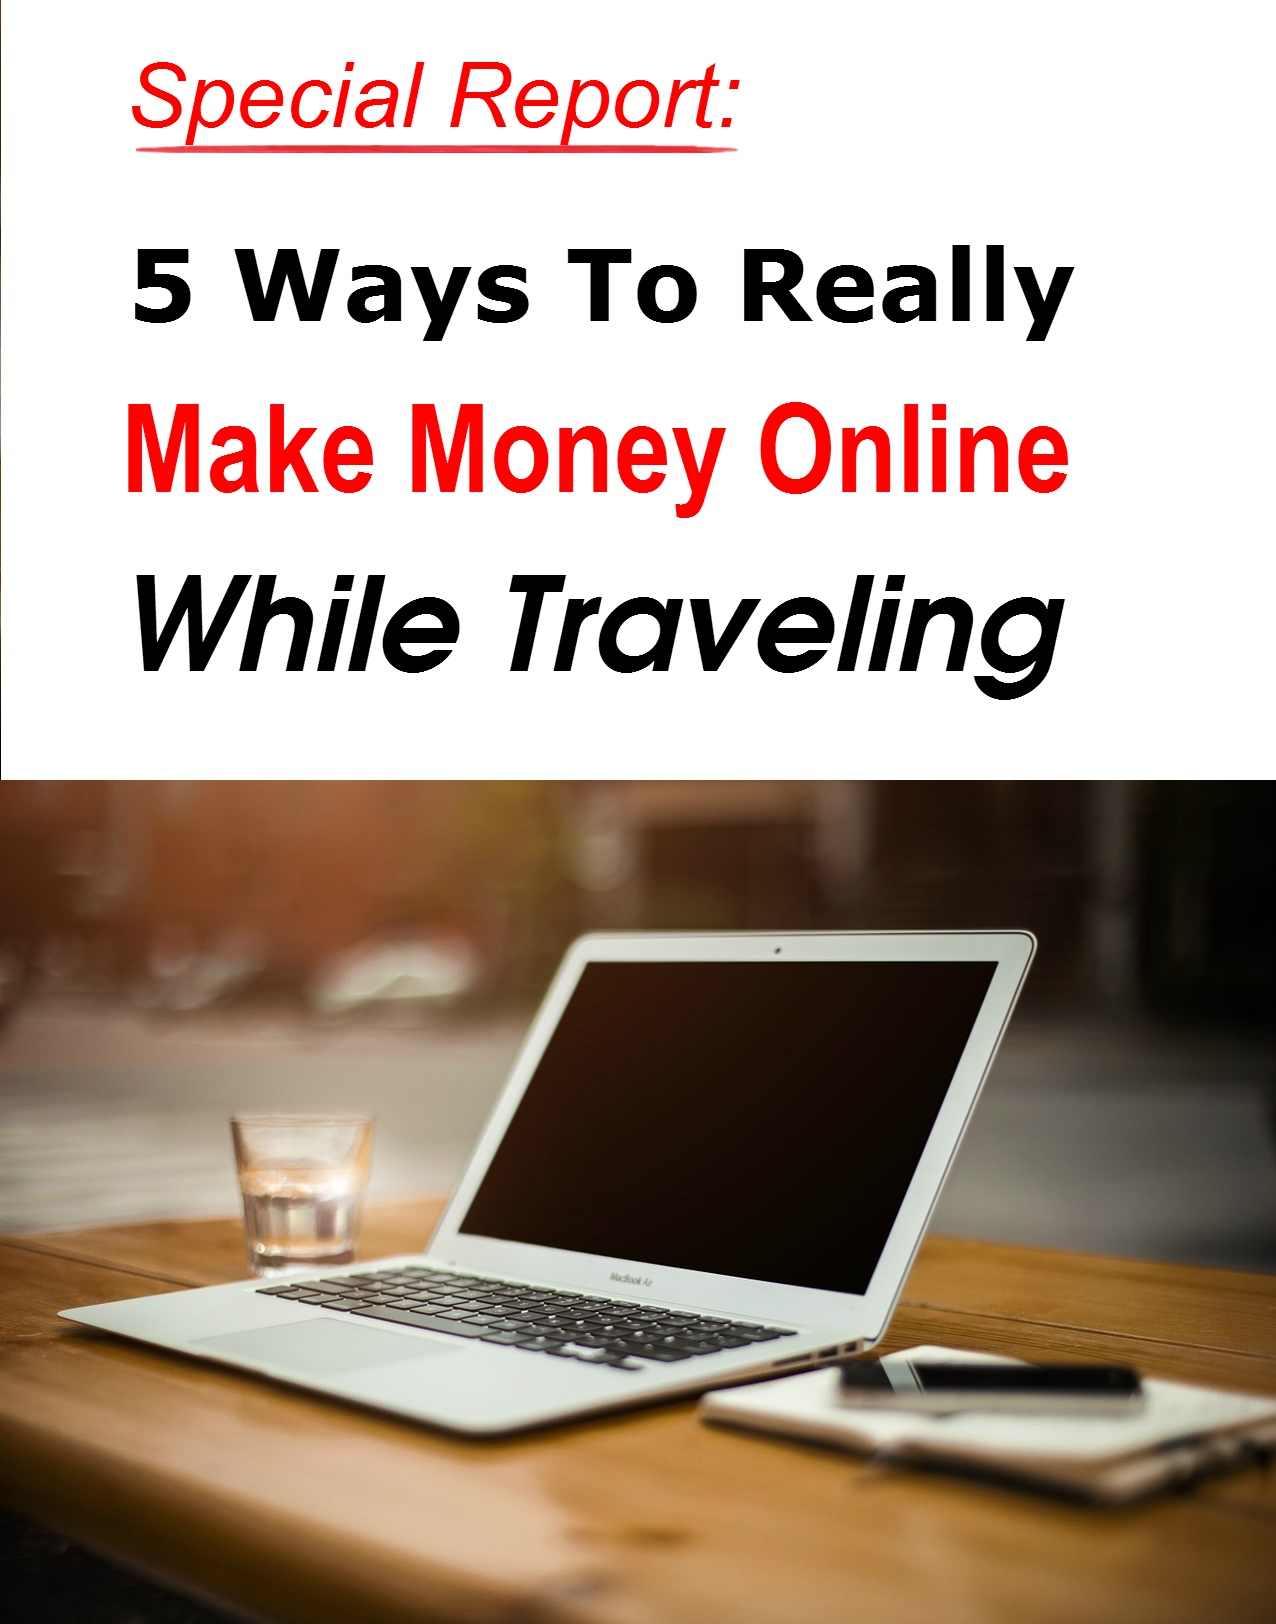 5 Ways To Really Make Money Online While Travelling